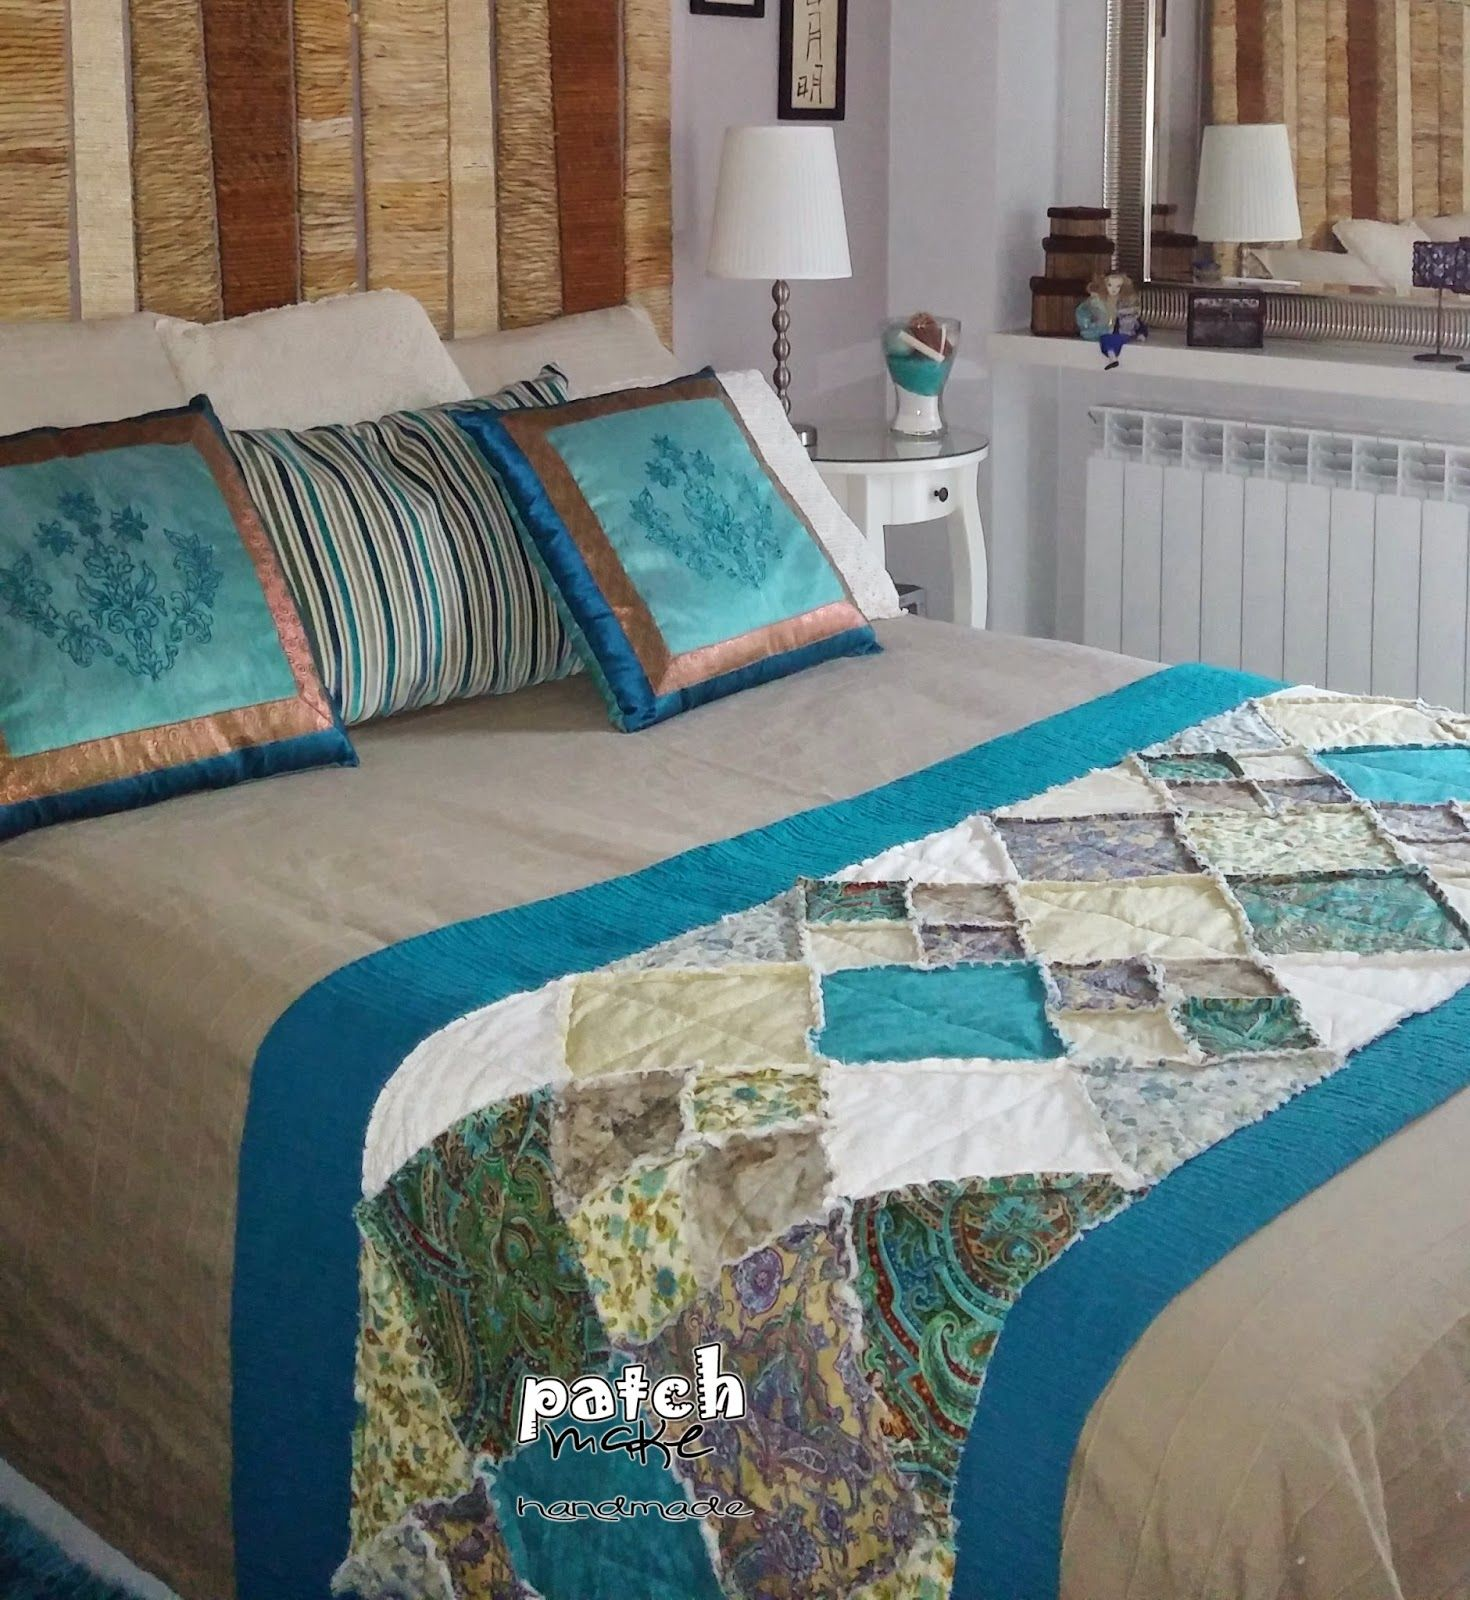 Patchwork bed sheets patterns - Artesan A De Patchwork Proyectos Diy Ideas Para Regalar Originales Nicas Y Handmade